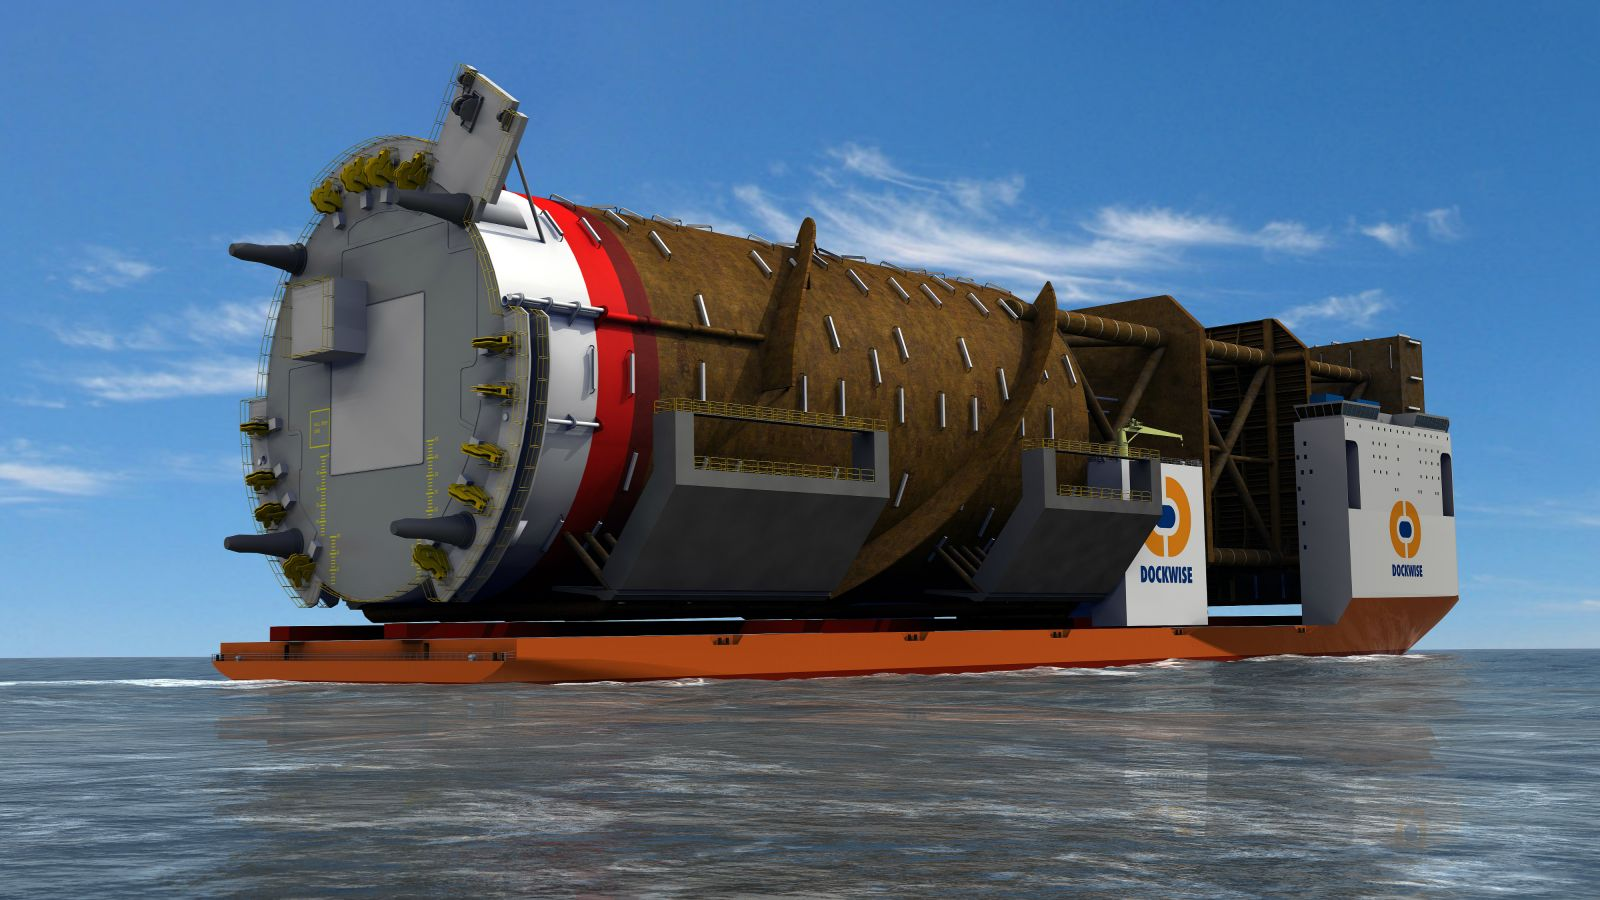 New Guidance on Heavy-lift and Project Cargo